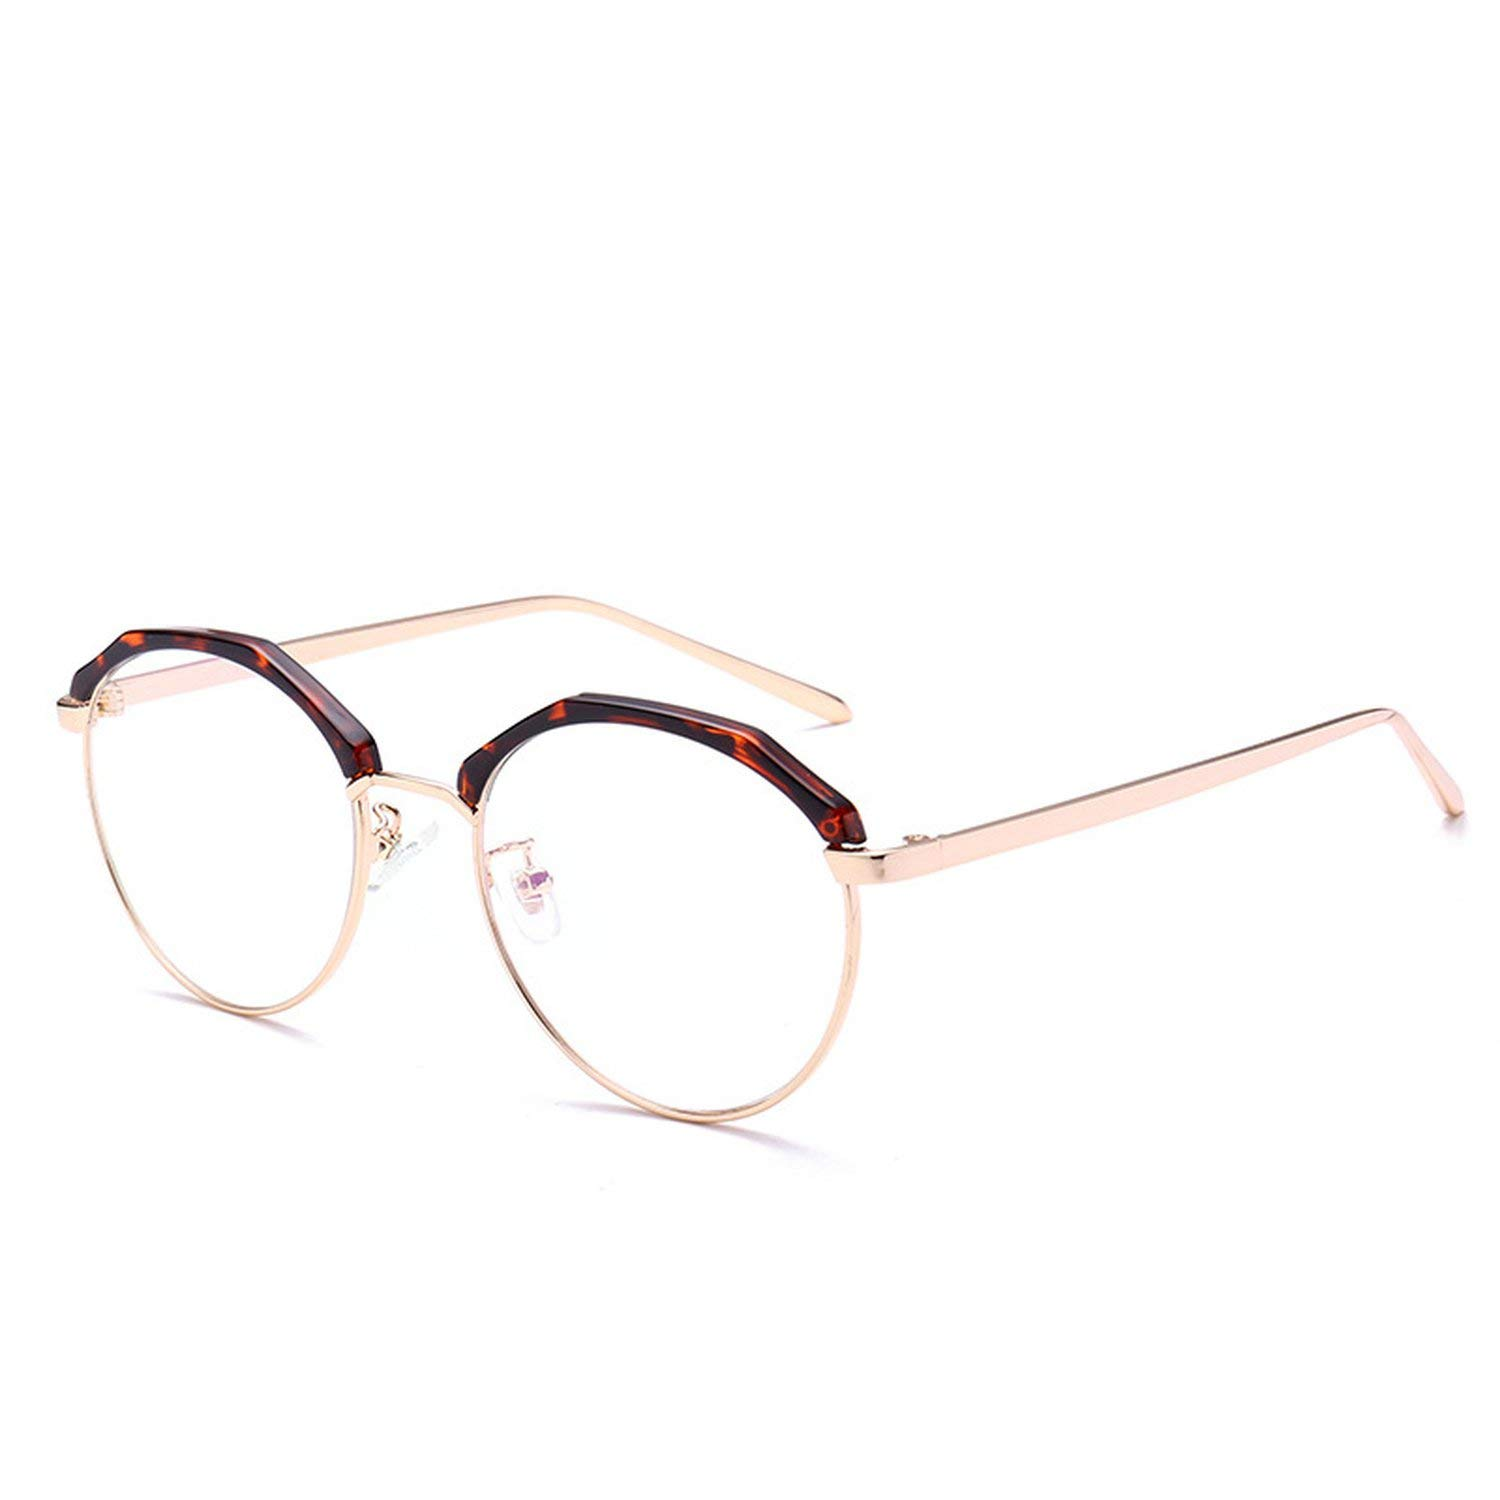 Cheap Best Frames For Round Face, find Best Frames For Round Face ...